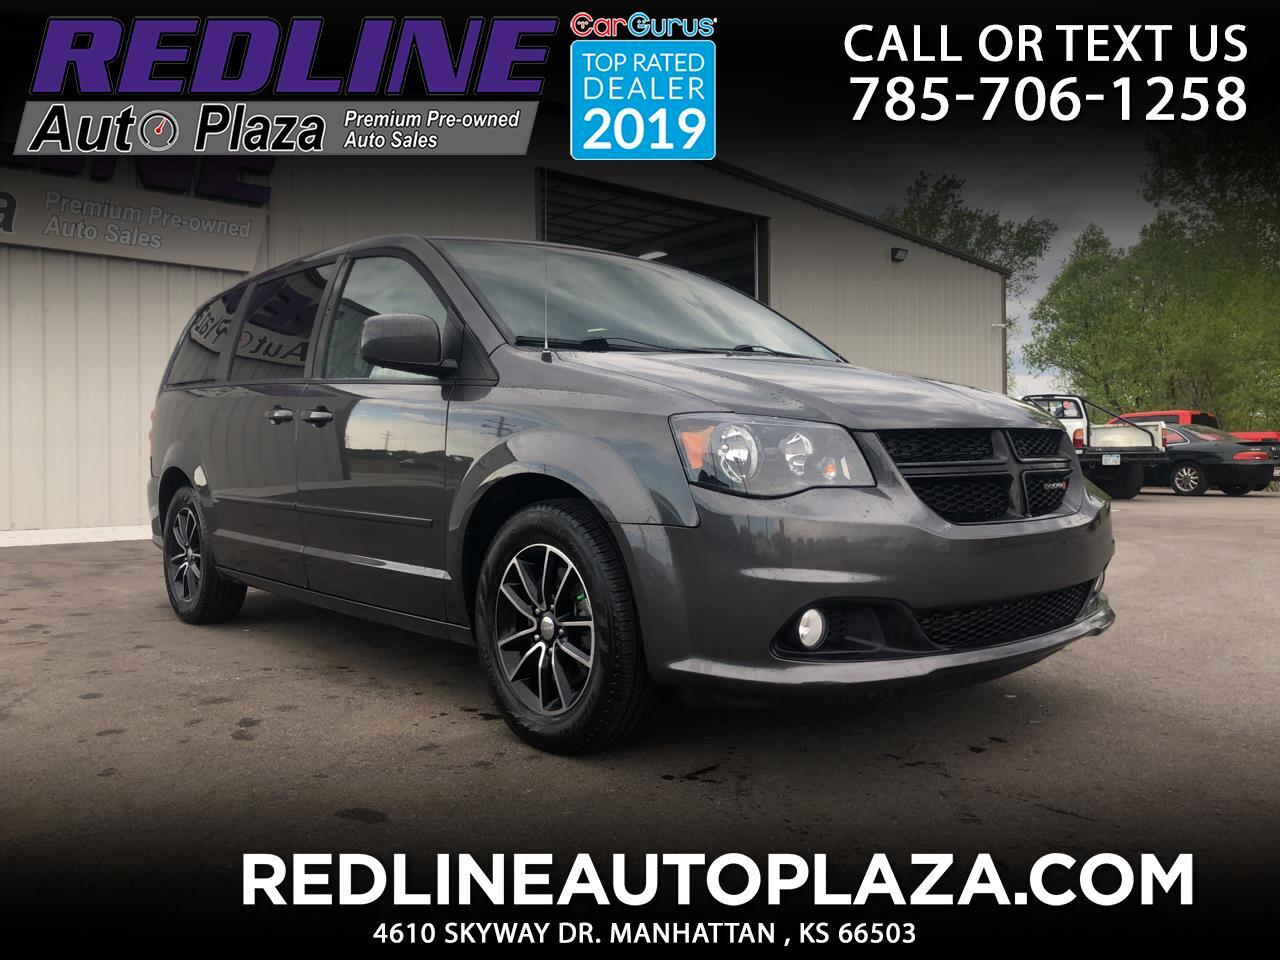 Dodge Grand Caravan 4dr Wgn SXT Plus 2015